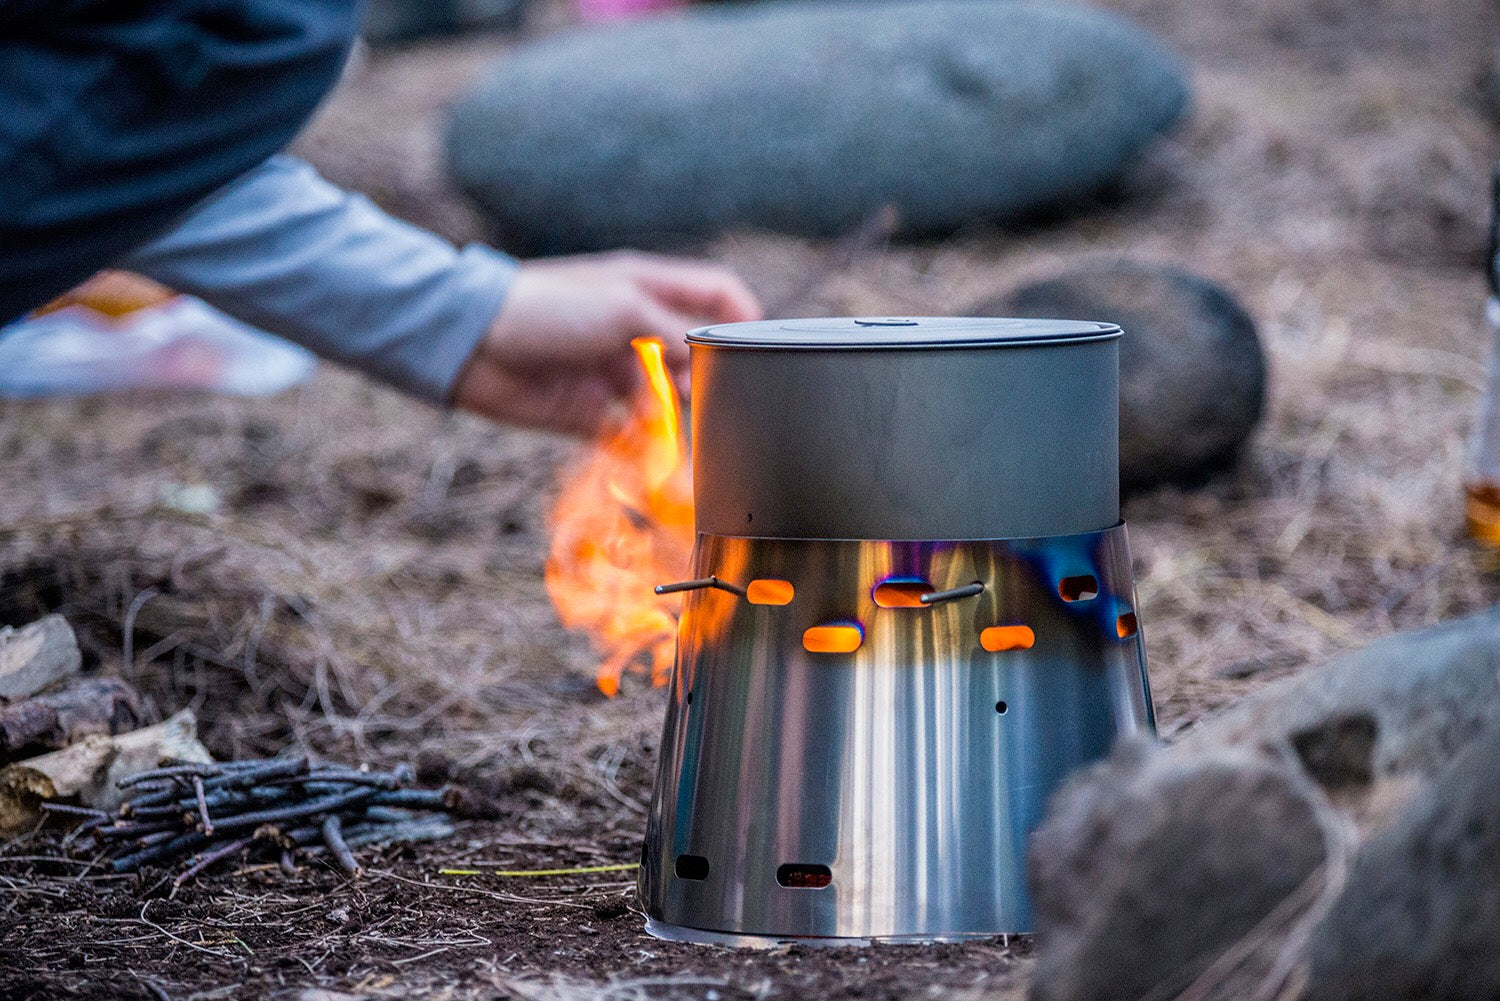 Amelia Sandy beach camping in a valley on the Big Island of Hawaii. Used the stove in wood burning mode for 4 hours straight, cooked everyone's food and drinks on it while their stoves stayed in their packs! Already have two friends asking for links to your website!